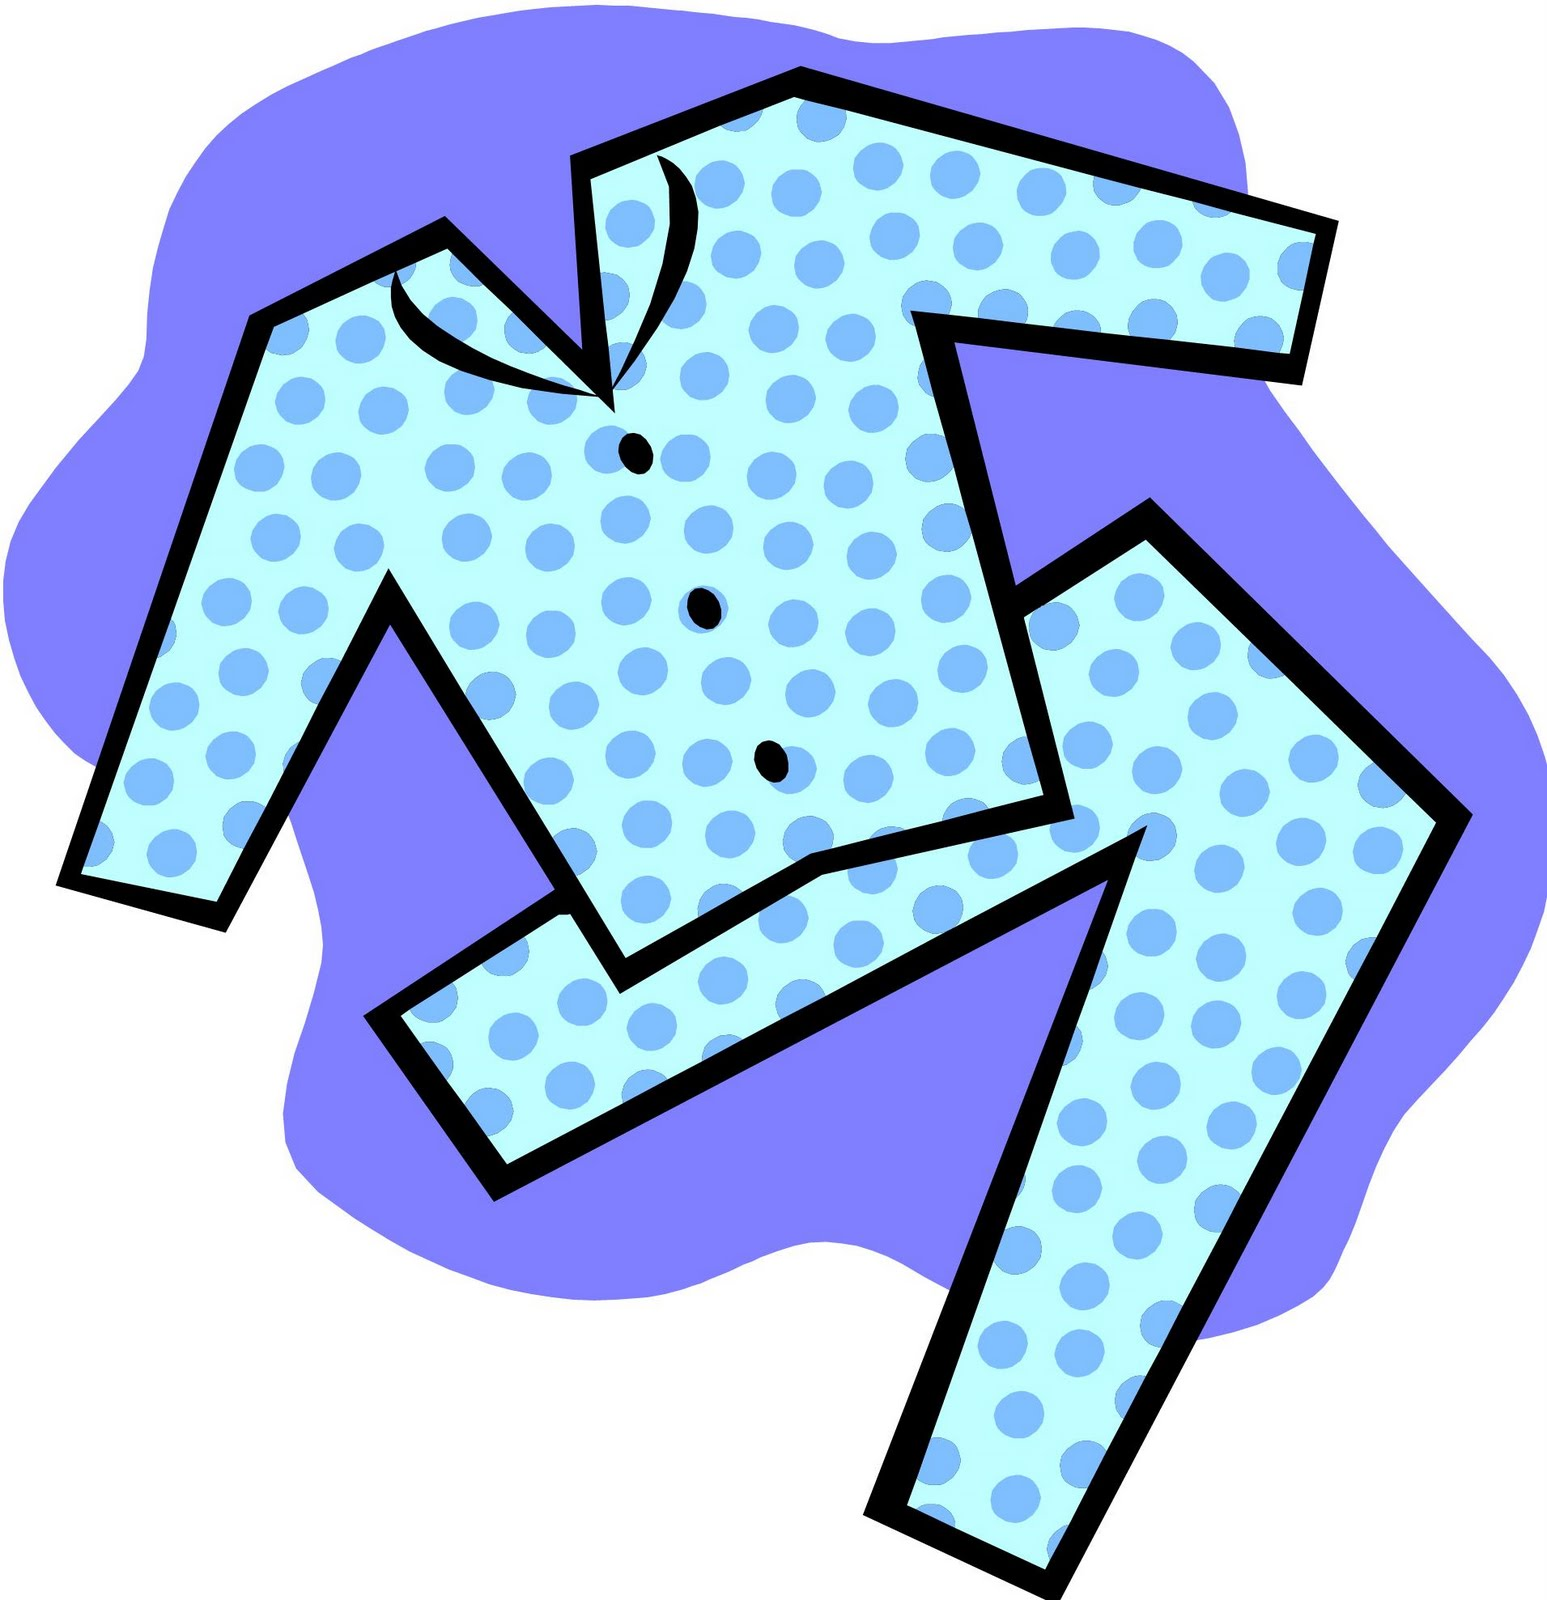 Put on pajamas clipart banner royalty free library Pajamas Clip Art Free | Clipart Panda - Free Clipart Images banner royalty free library